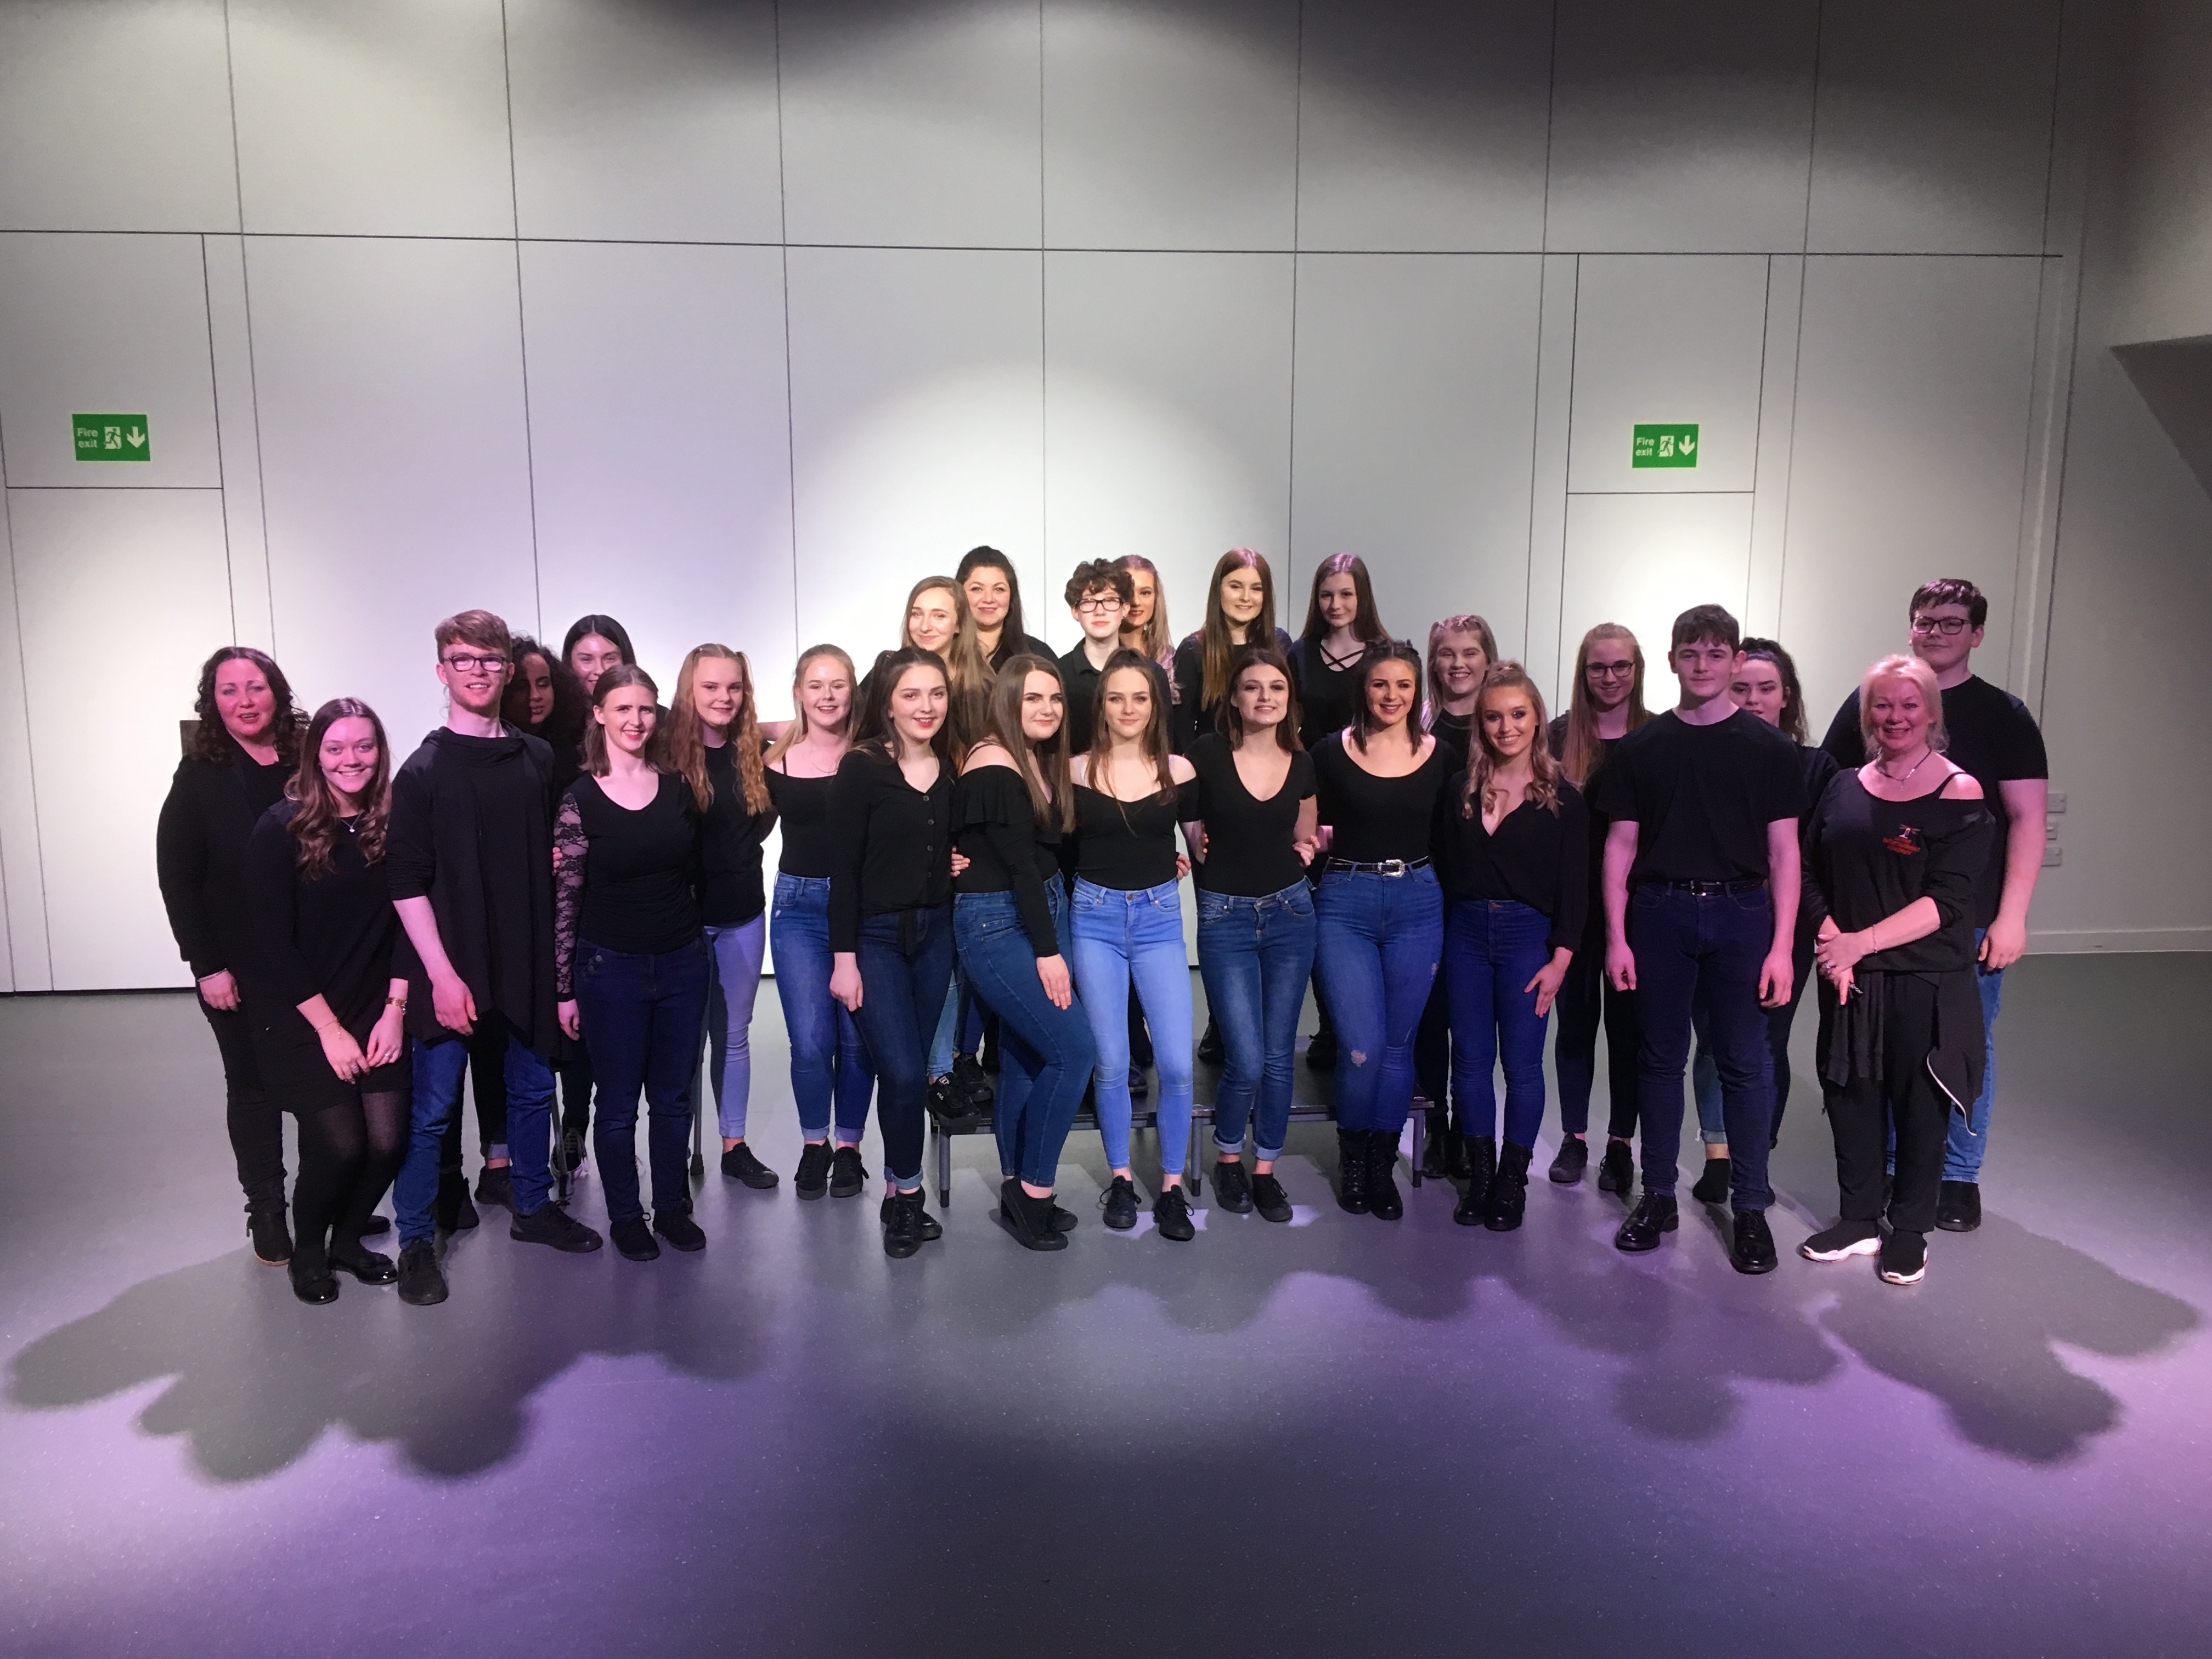 Teenagers from Buckie High School and Elgin High School took part in the production.